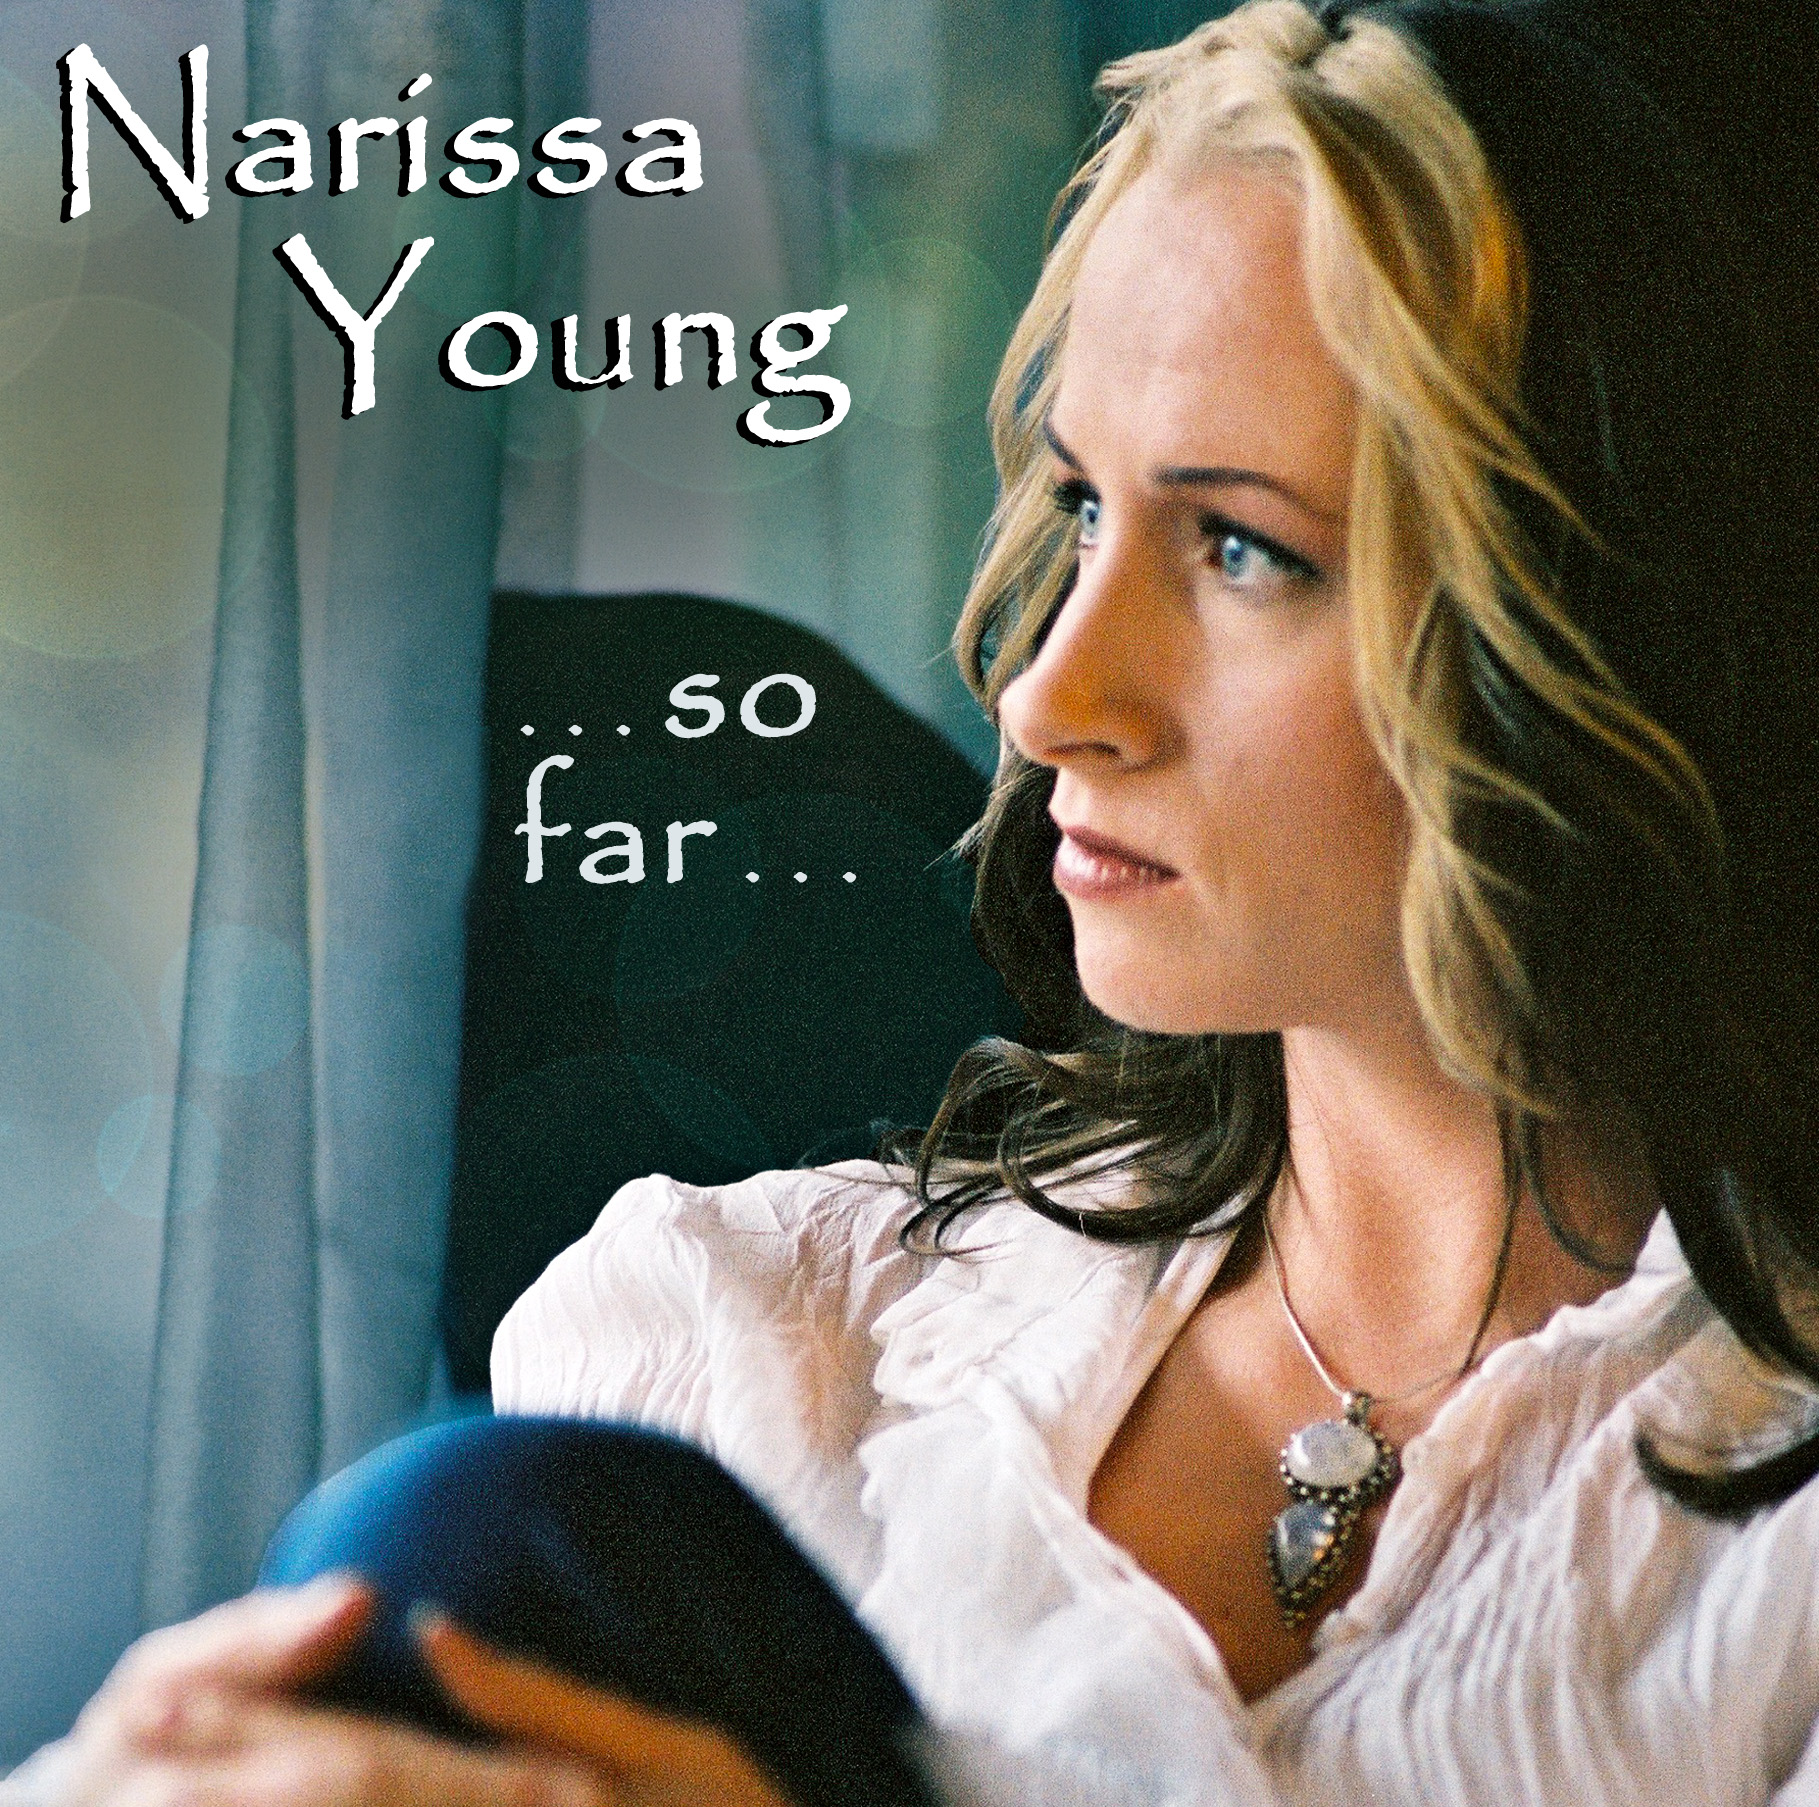 - Inspiring, introspective melodies and lyrics supported by strong vocals rich with emotion and texture. All original songs, written and produced by Narissa.